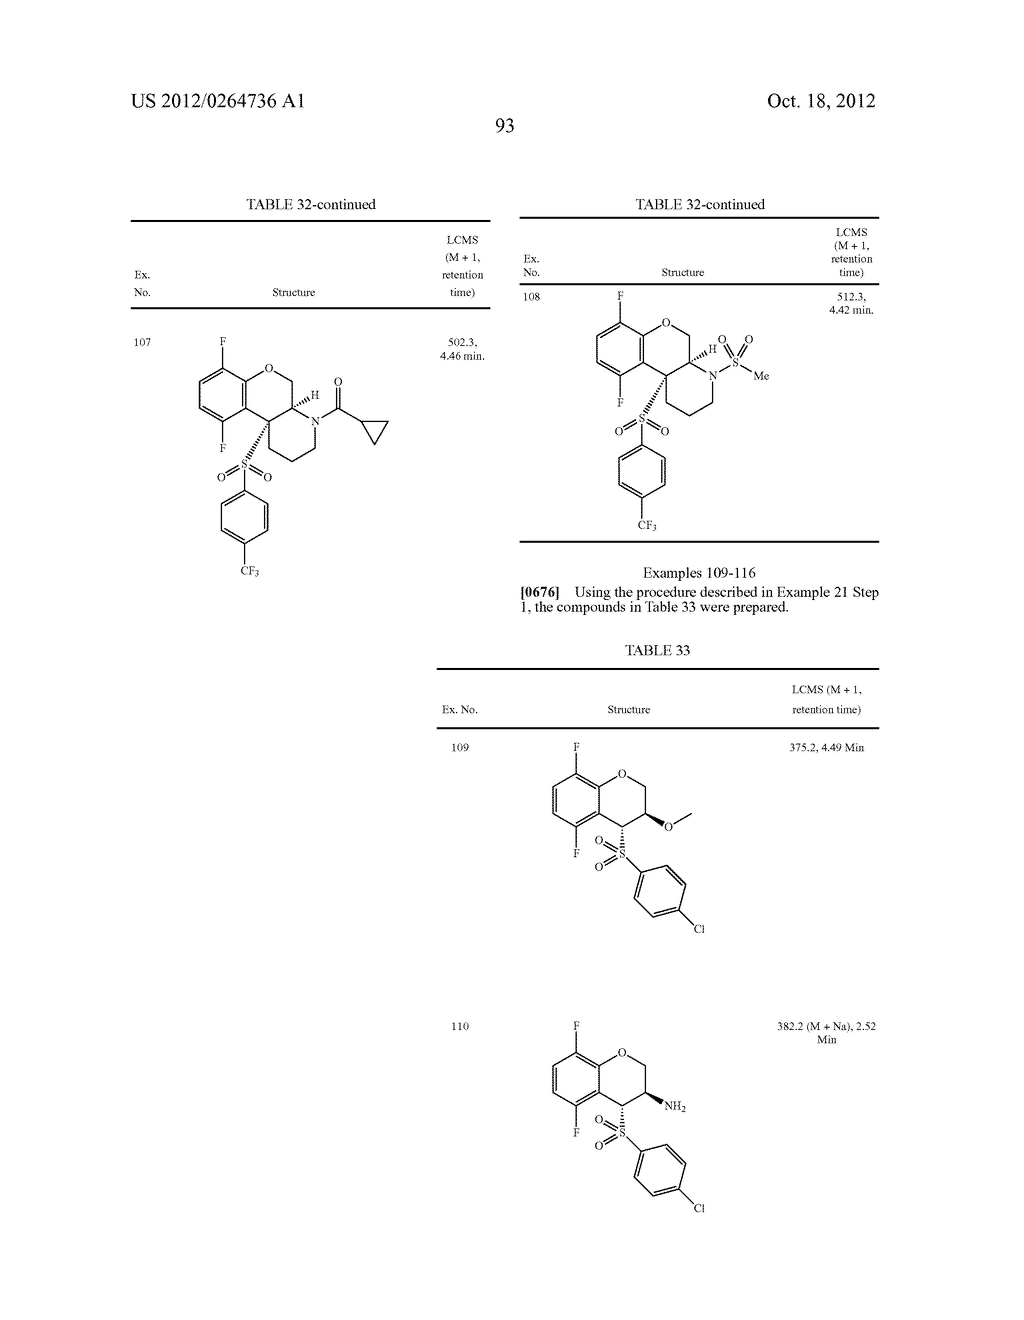 BENZENESULFONYL-CHROMANE, THIOCHROMANE, TETRAHYDRONAPHTHALENE AND RELATED     GAMMA SECRETASE INHIBITORS - diagram, schematic, and image 94